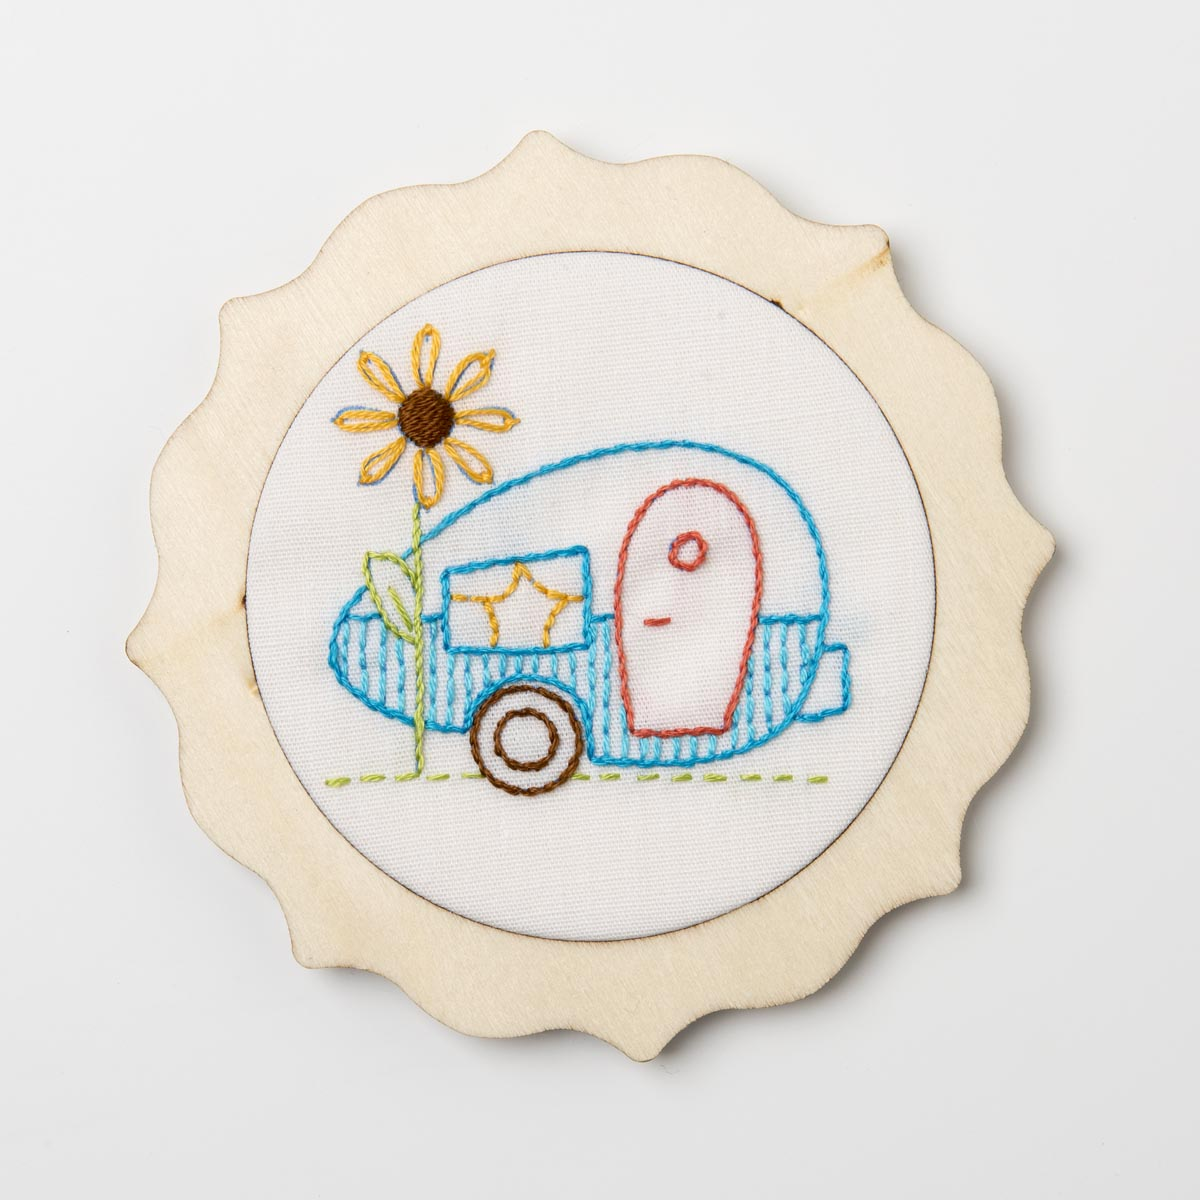 Bucilla ® My 1st Stitch™ - Stamped Embroidery Kits - Camper